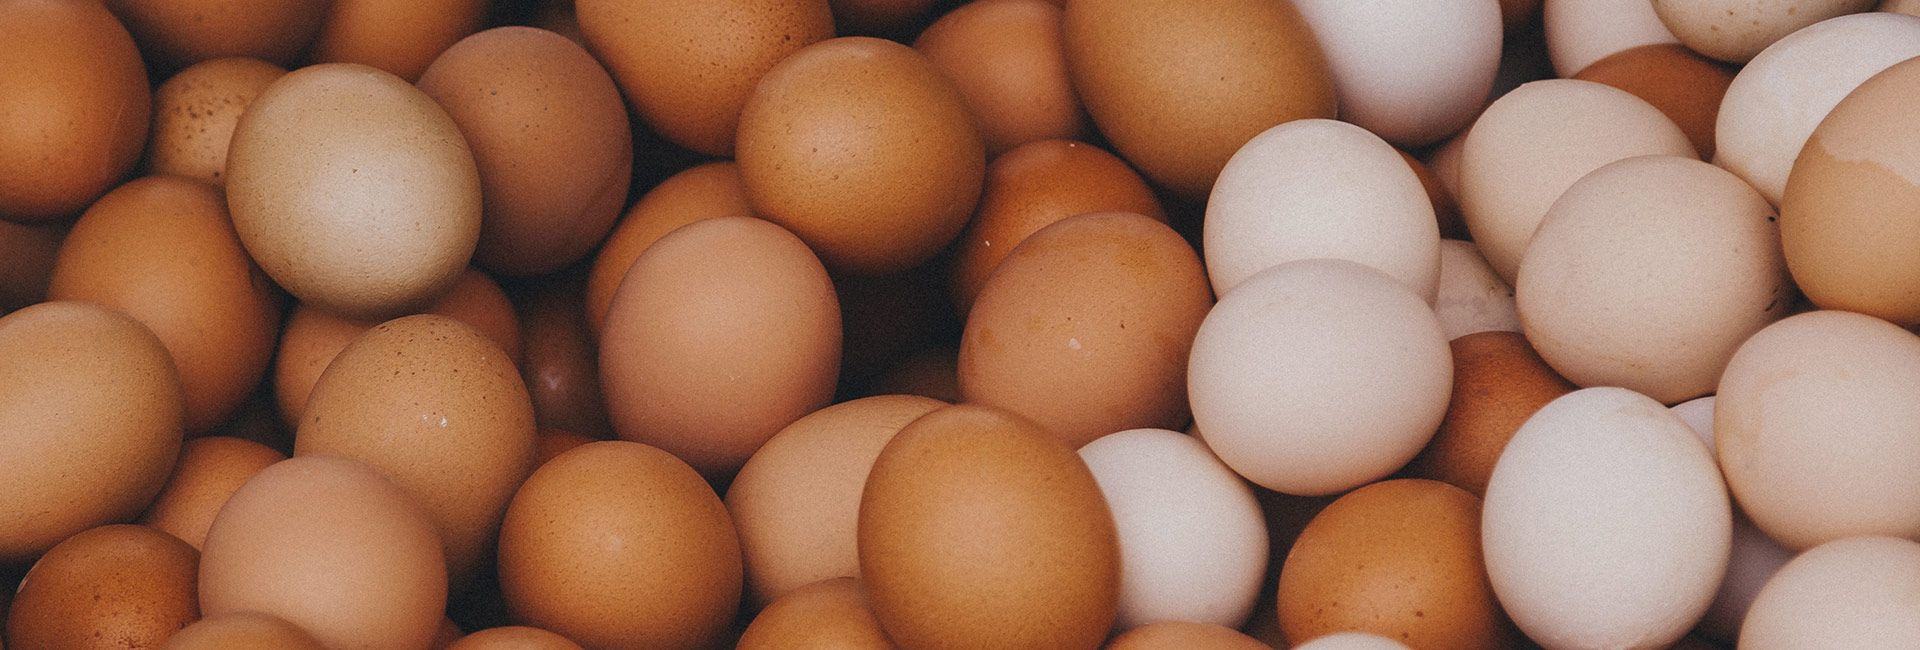 all your eggs